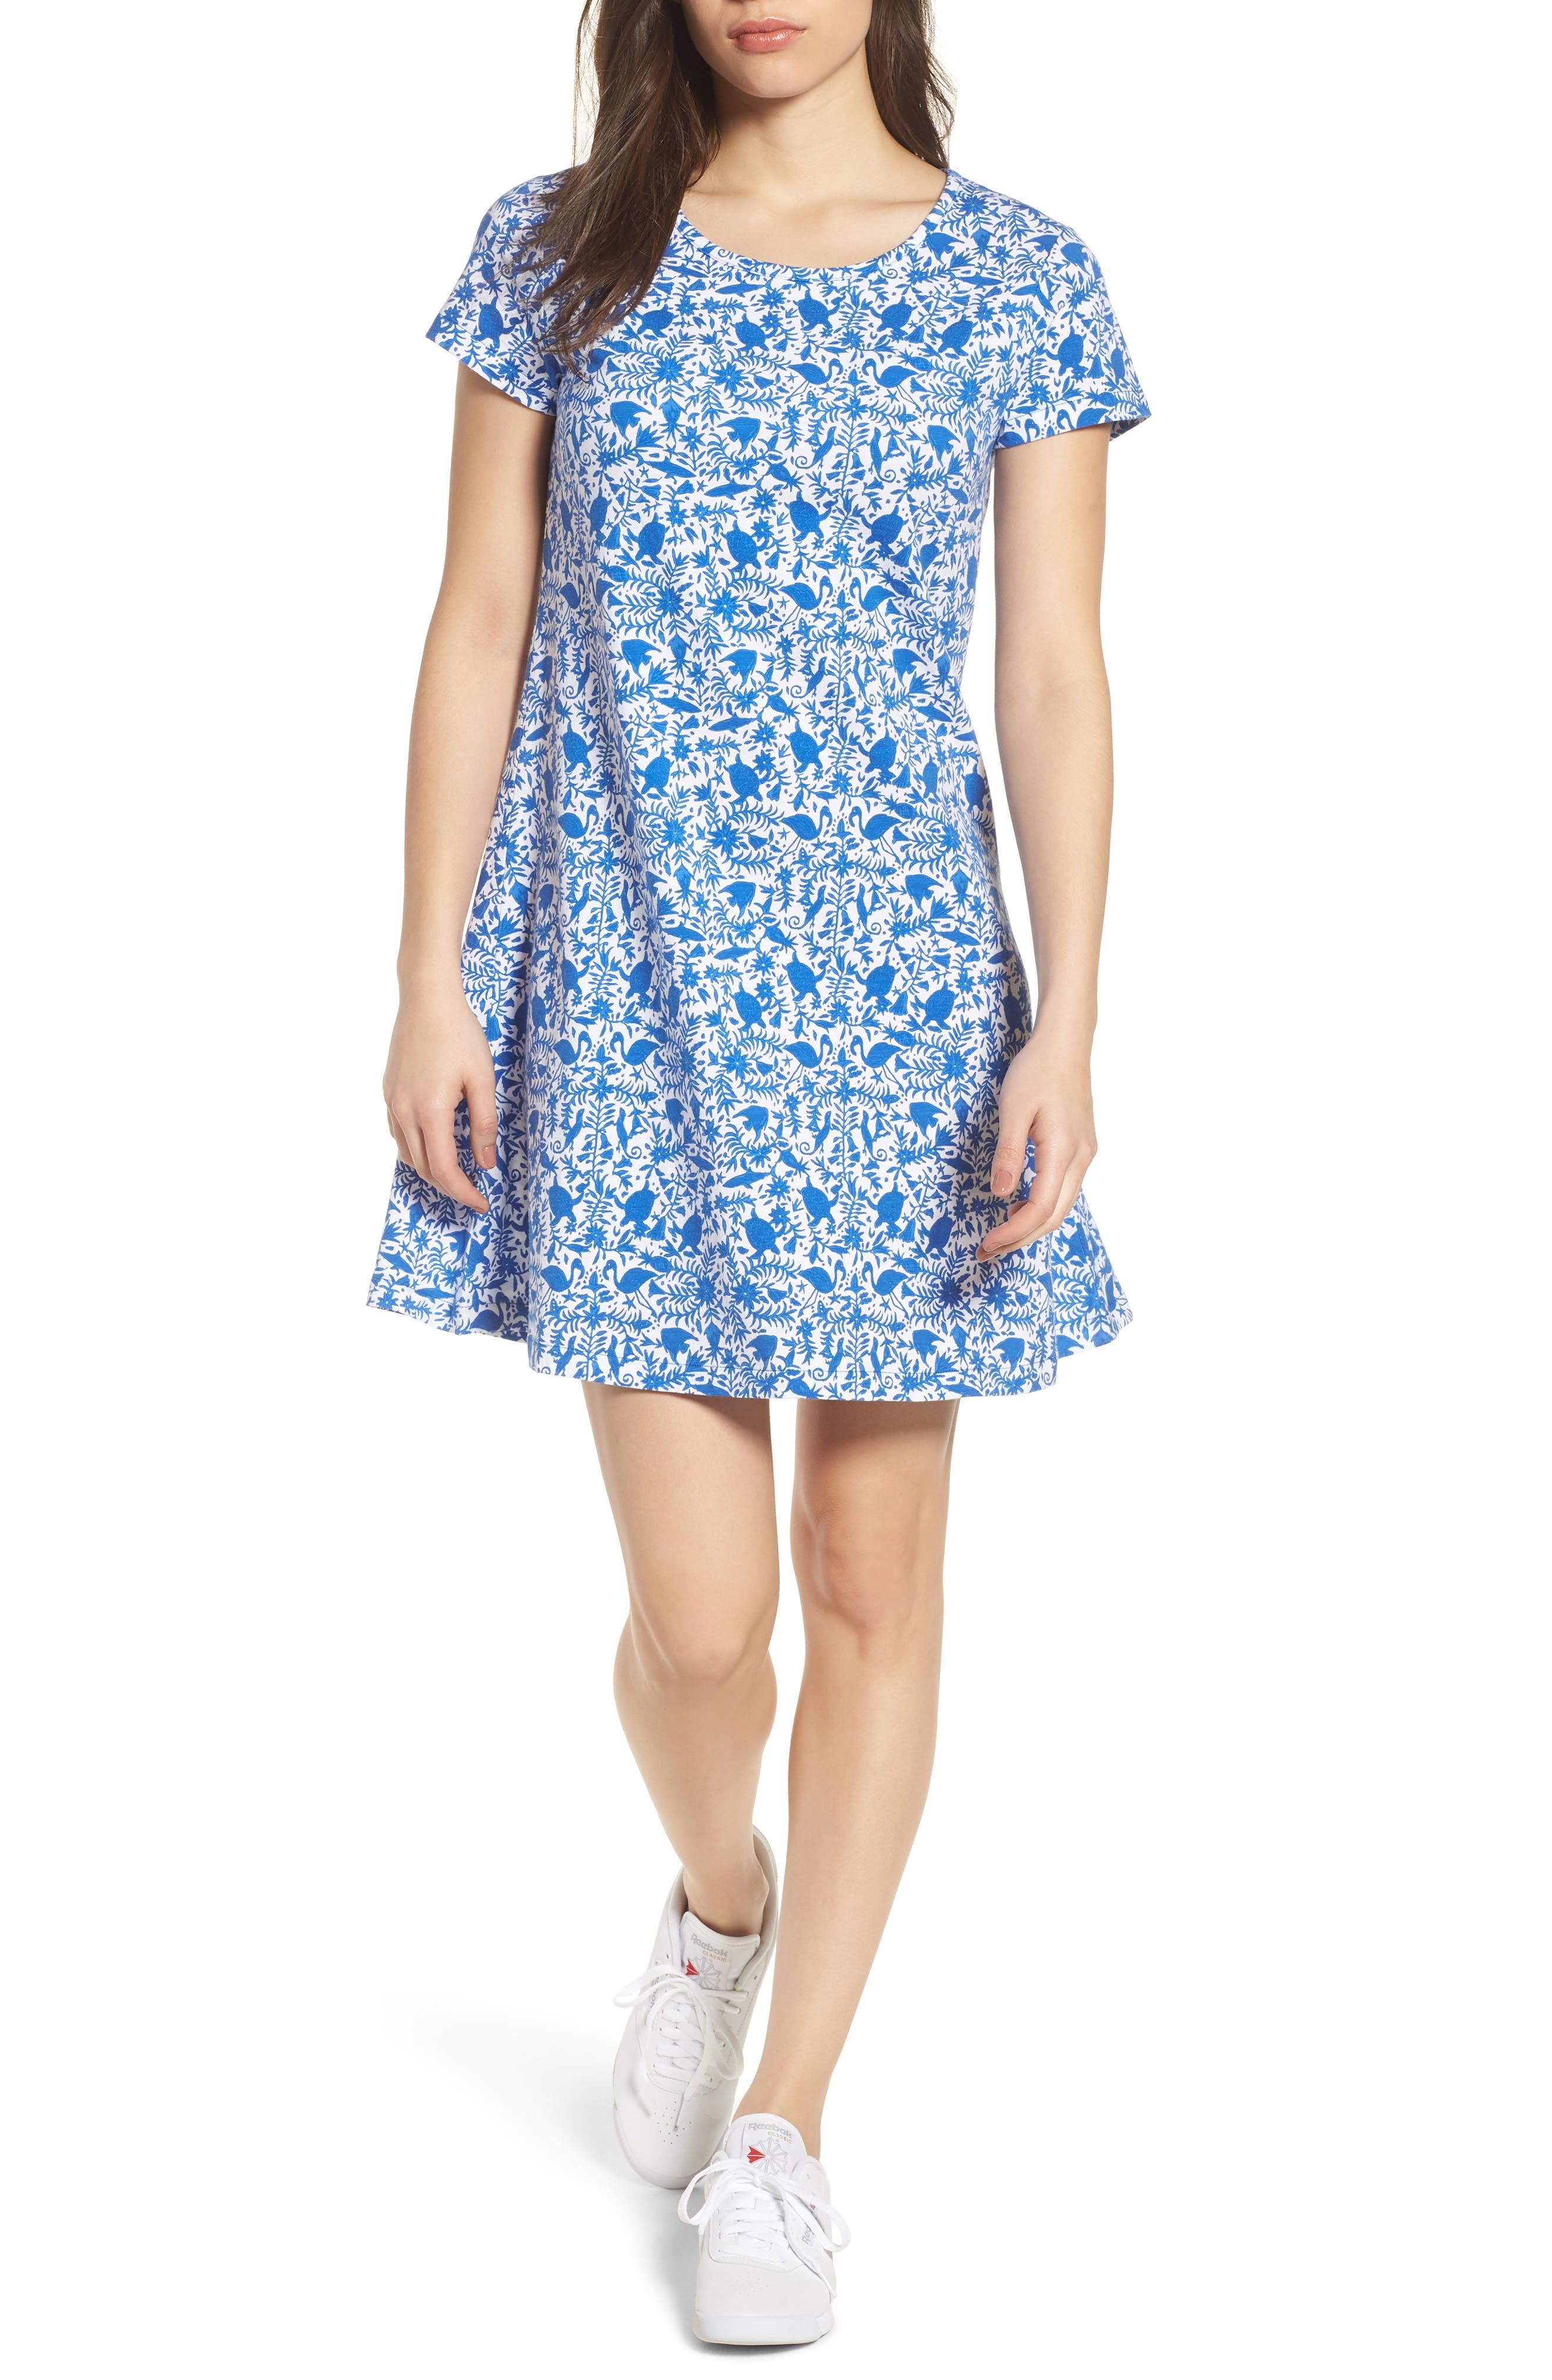 Bahamas Otomi Print Stretch Cotton Dress,                         Main,                         color, Yacht Blue